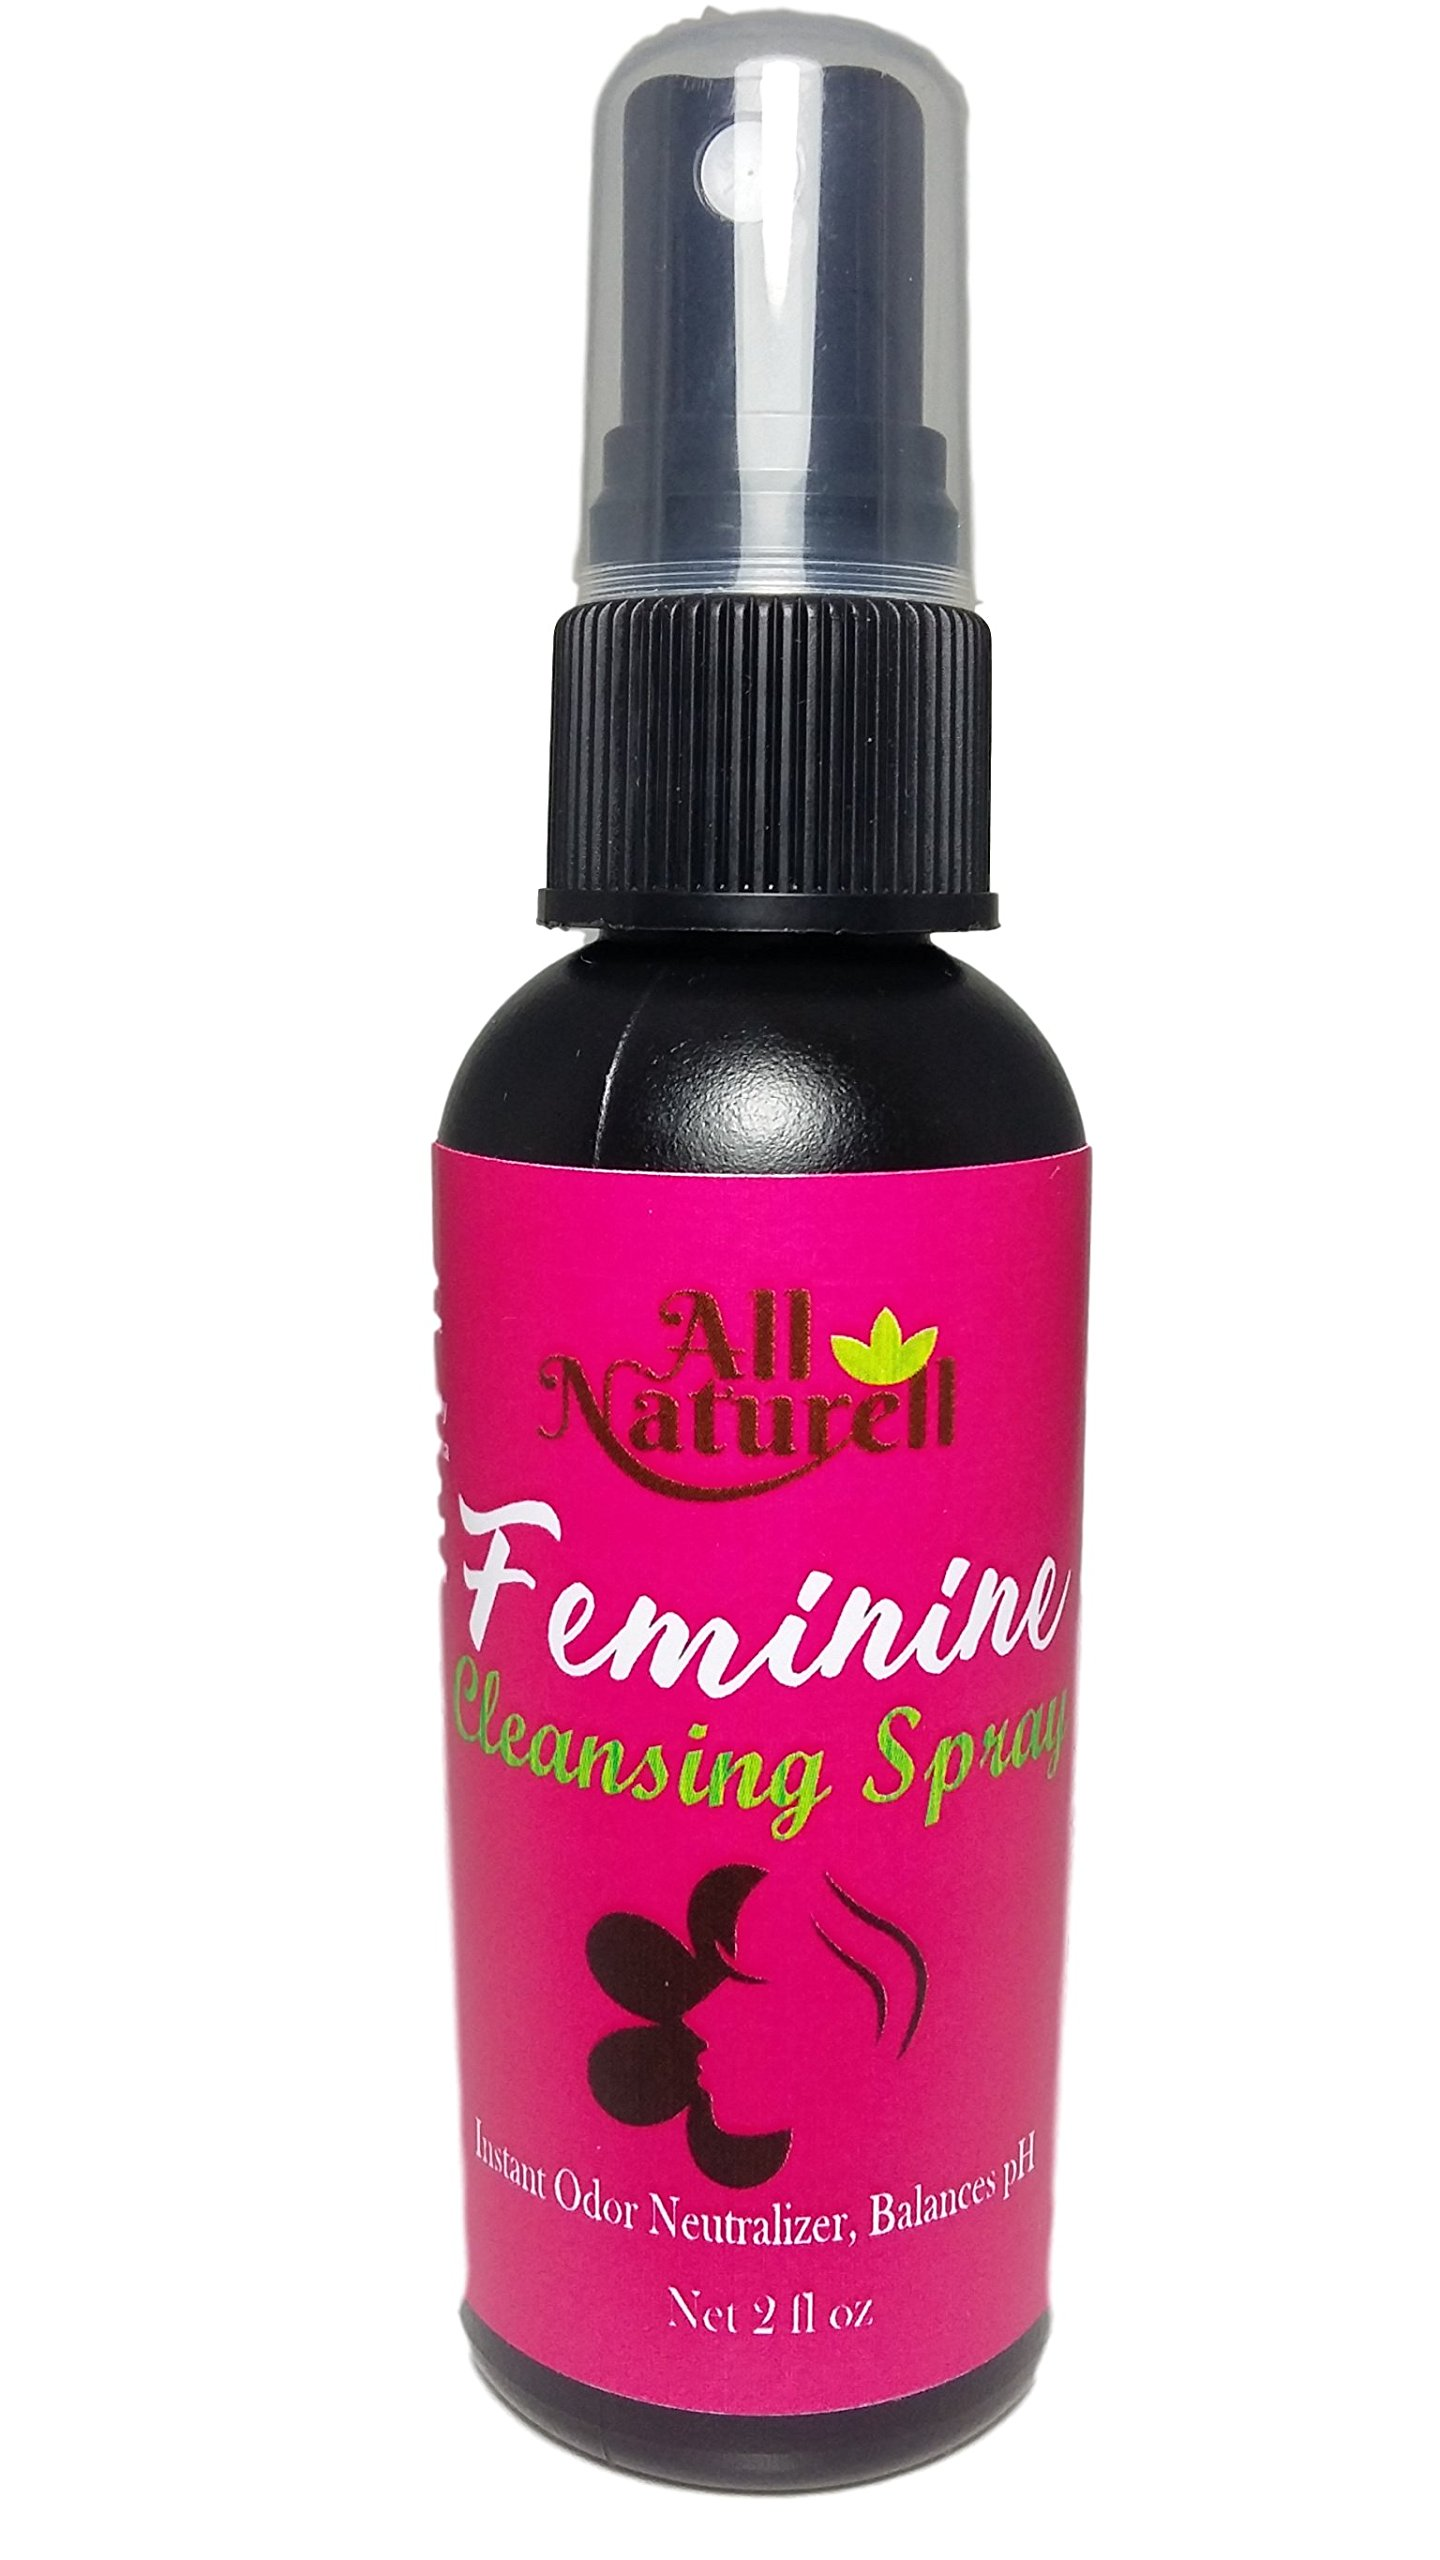 All Natural On The Go Feminine Hygiene Spray | Instant Odor Neutralizer | Relief from Yeast Infection & BV | Paraben and Fragrance Free (2 oz)